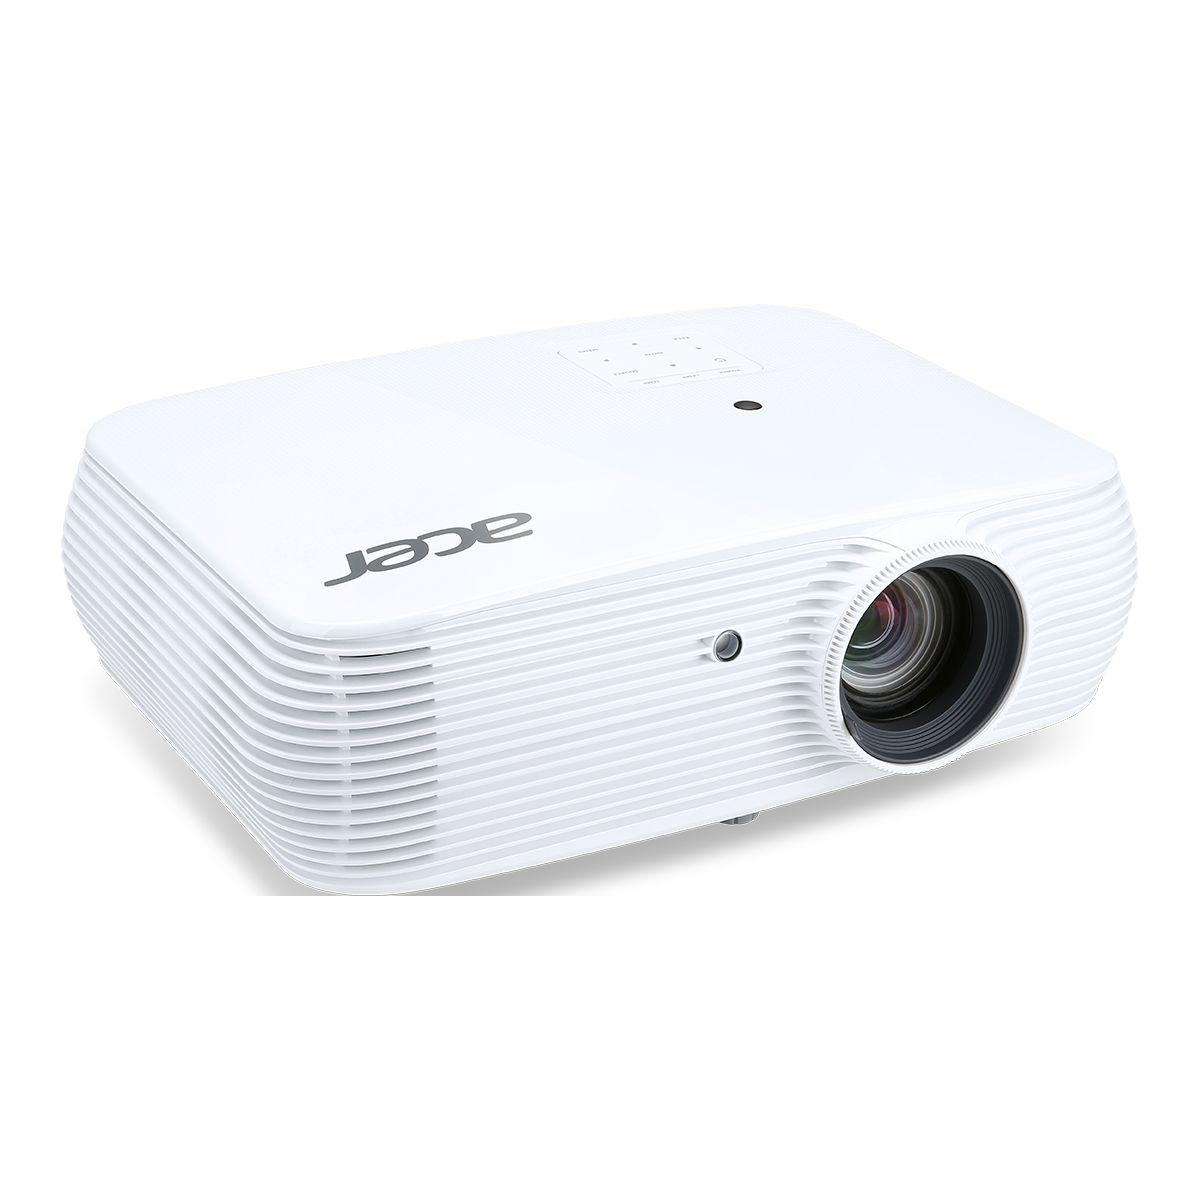 Vid�oprojecteur home cin�ma acer p5530 (photo)